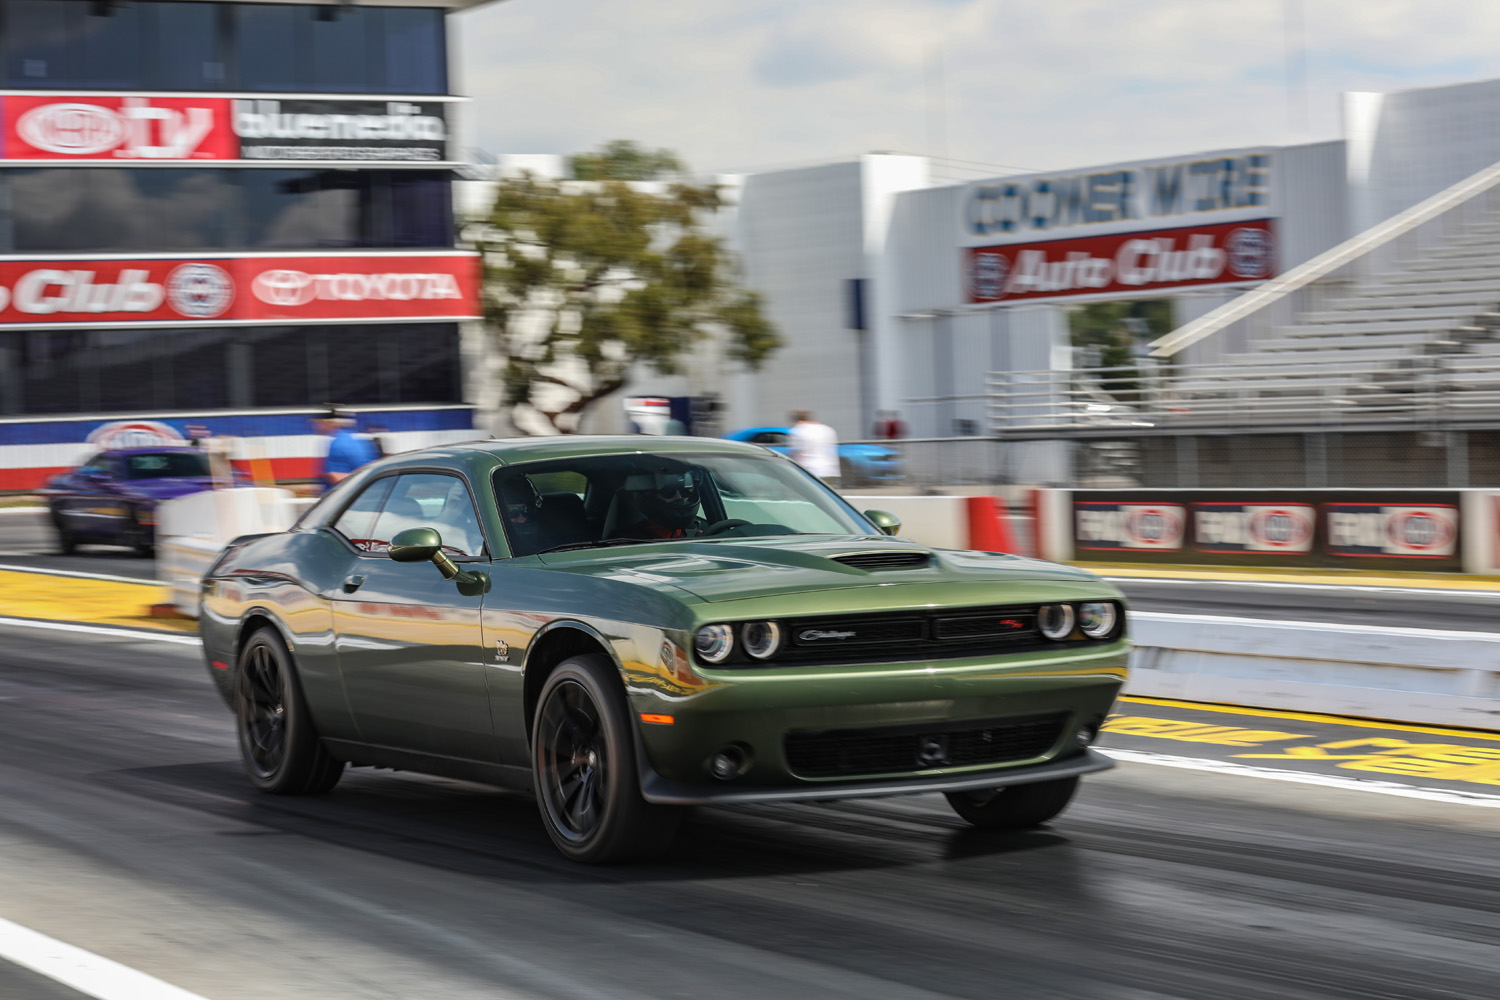 2019 Challenger R/T Scat Pack 1320 Drag strip Launch